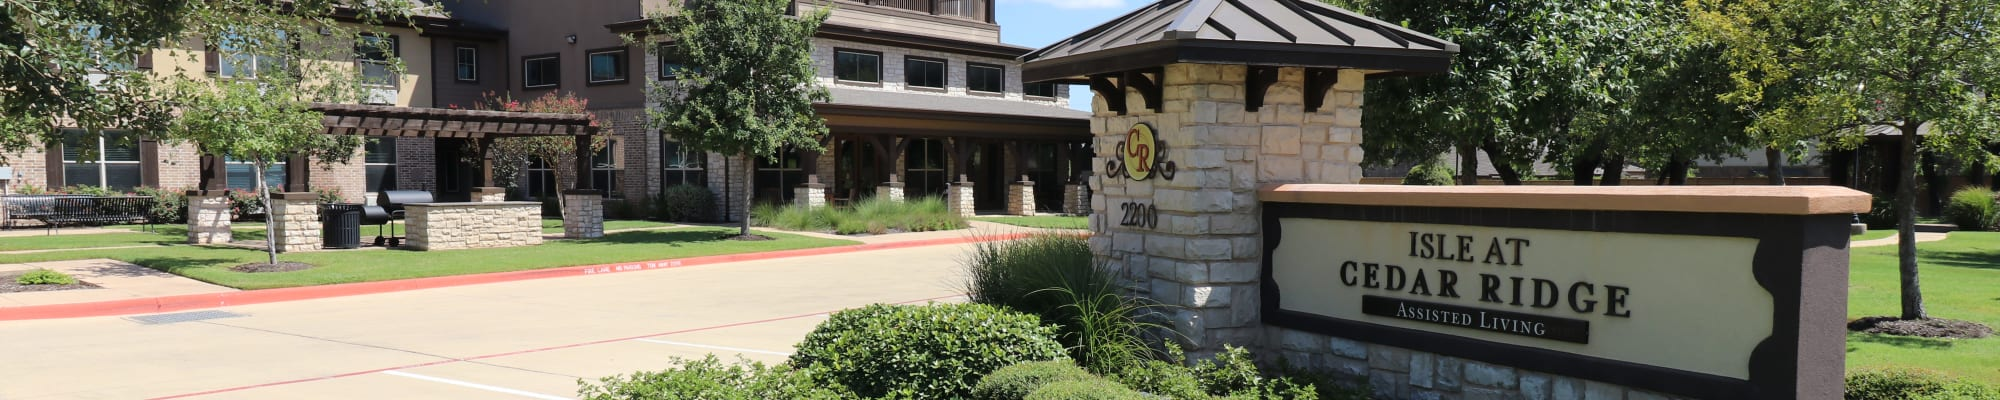 Recent news at Isle at Cedar Ridge in Cedar Park, Texas